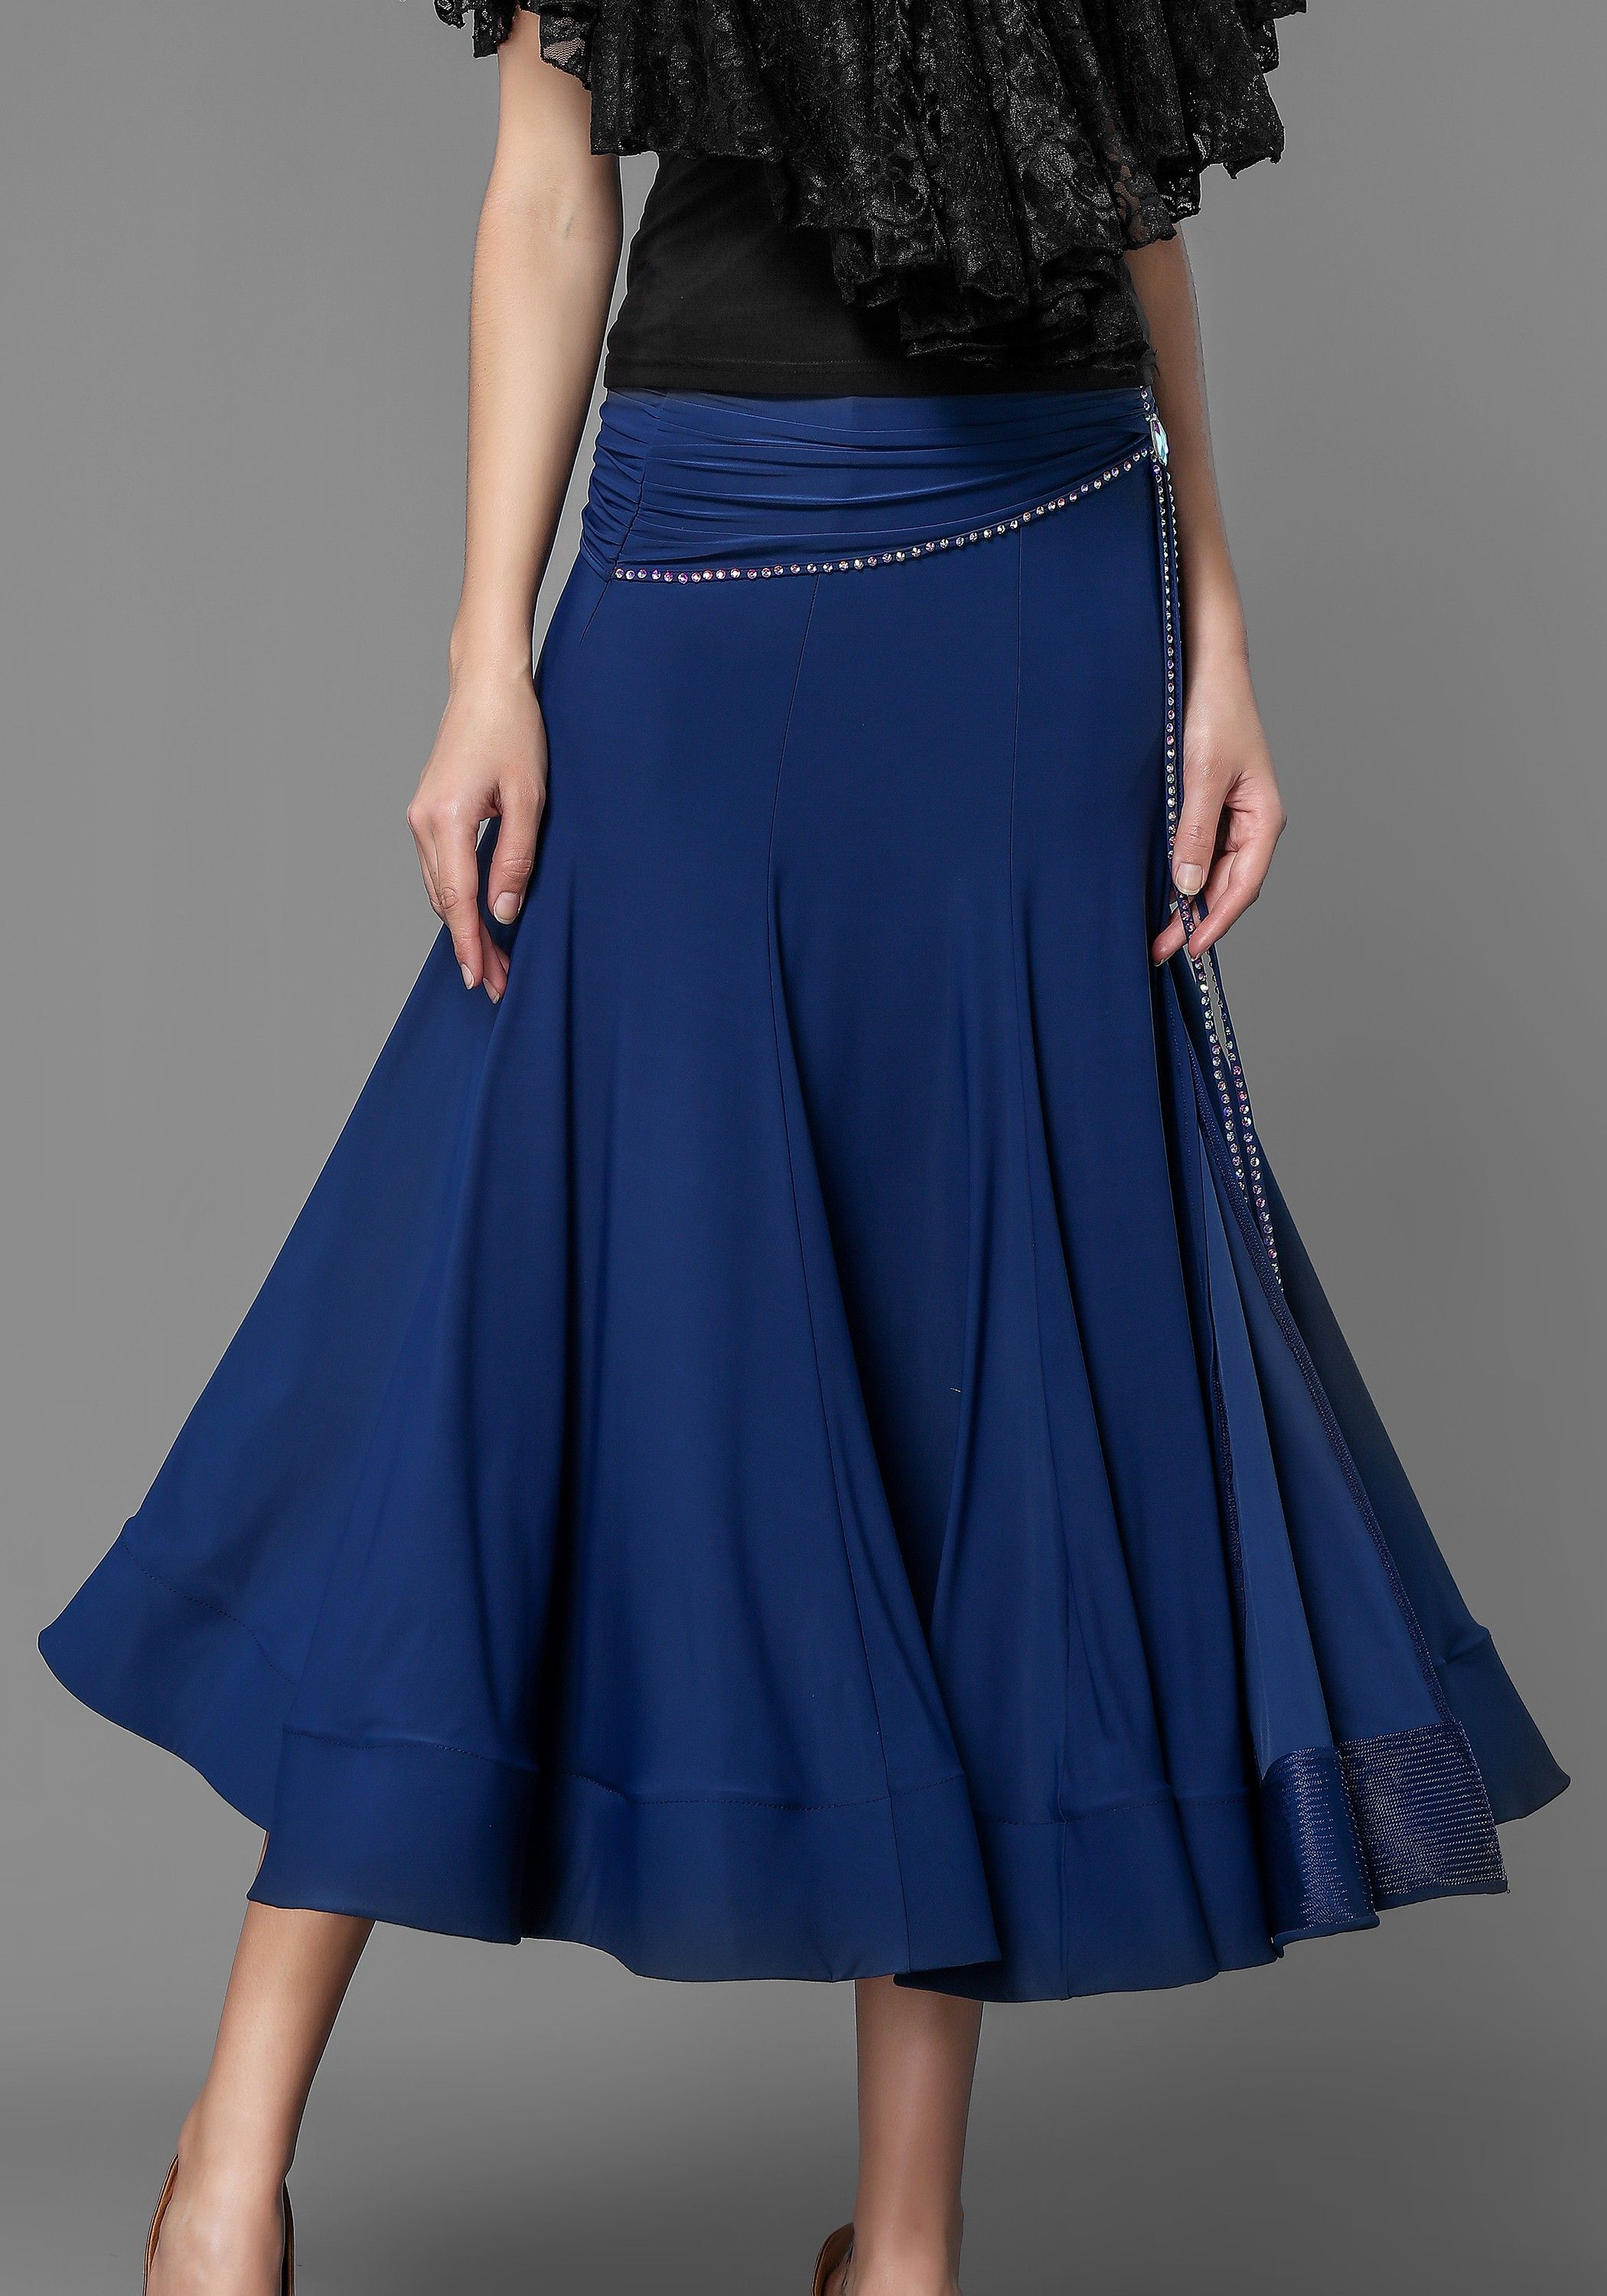 d4b44821fe84 Luxury Crepe Stoned Ballroom Smooth Skirt | Practice Wear | High ...